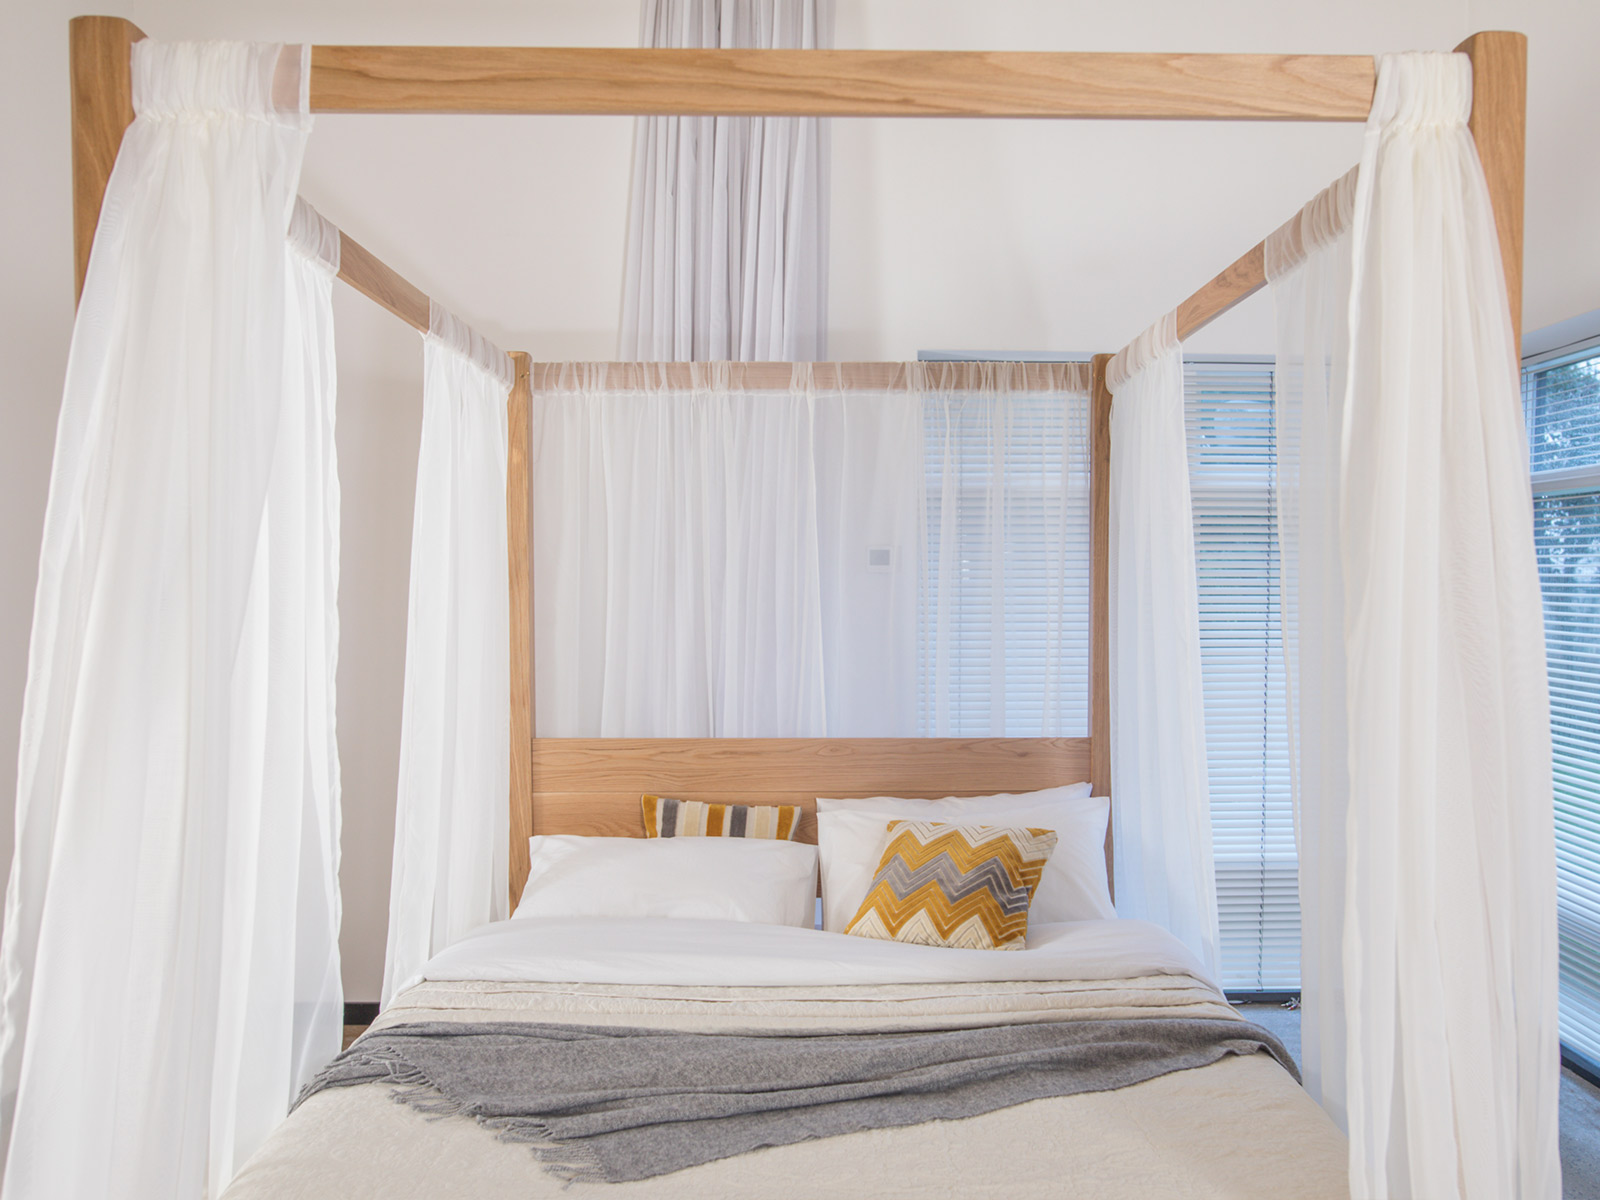 Picture of: Four Poster Bed Summer Get Laid Beds